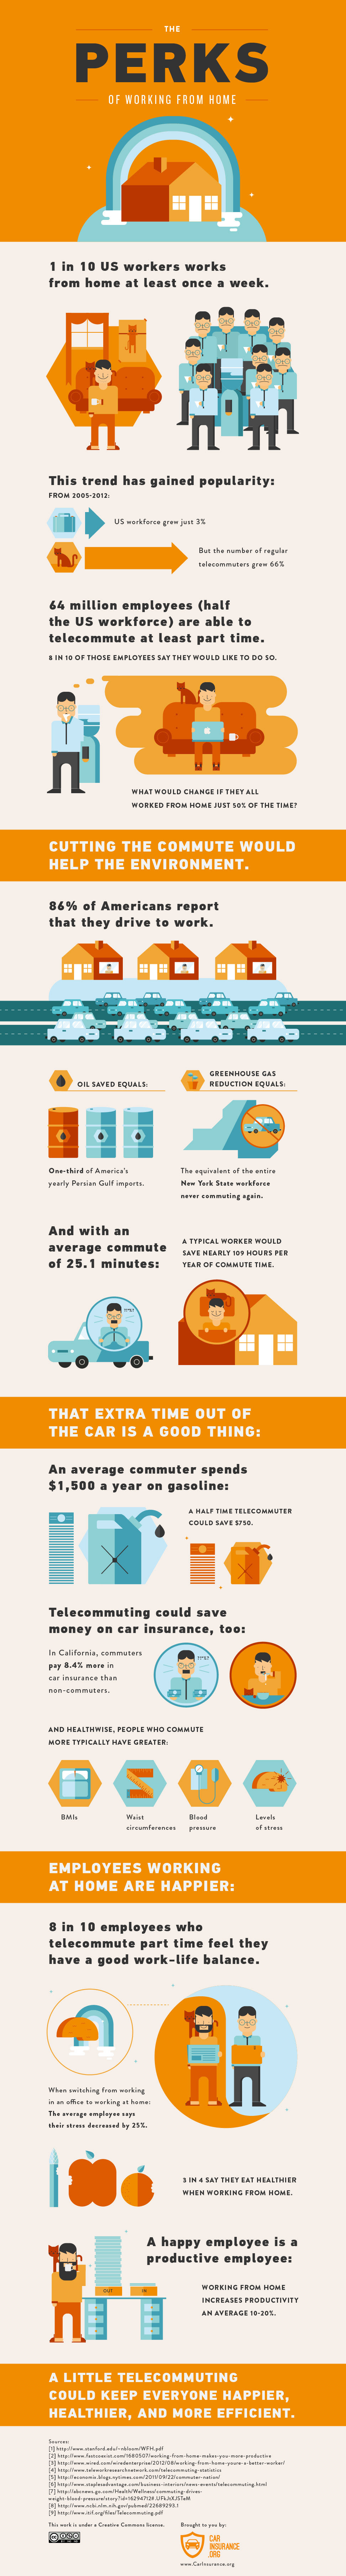 The Perks of Working From Home - #infographic